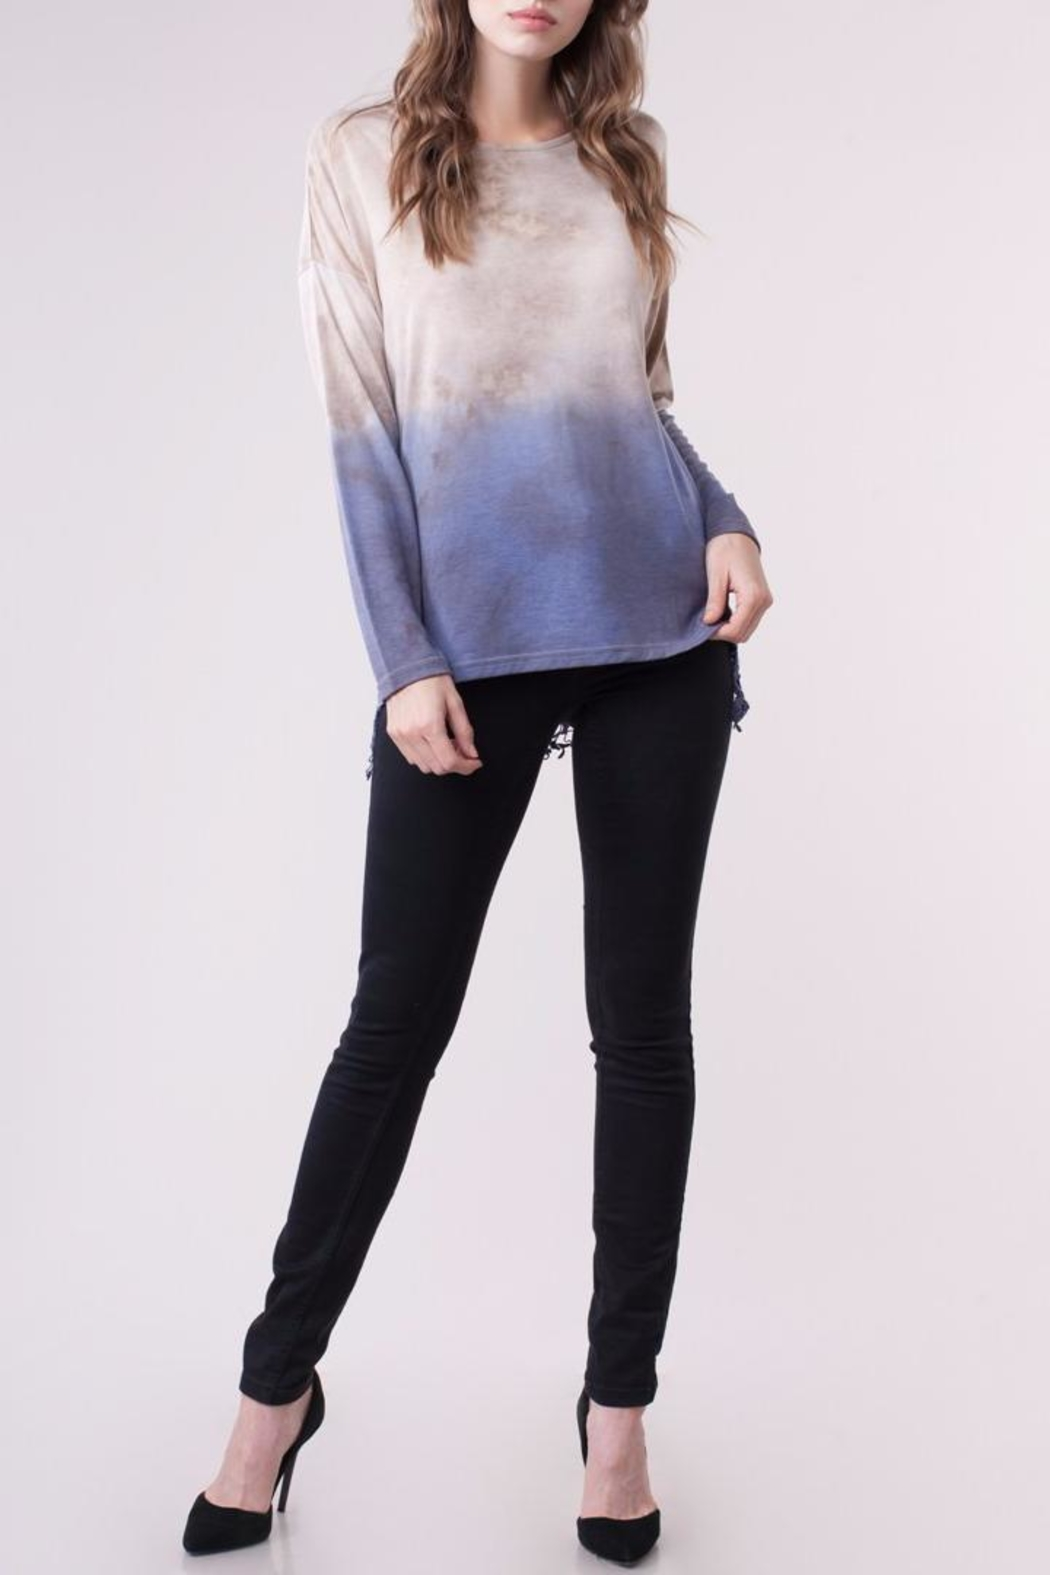 People Outfitter Geneva Knit Top - Main Image